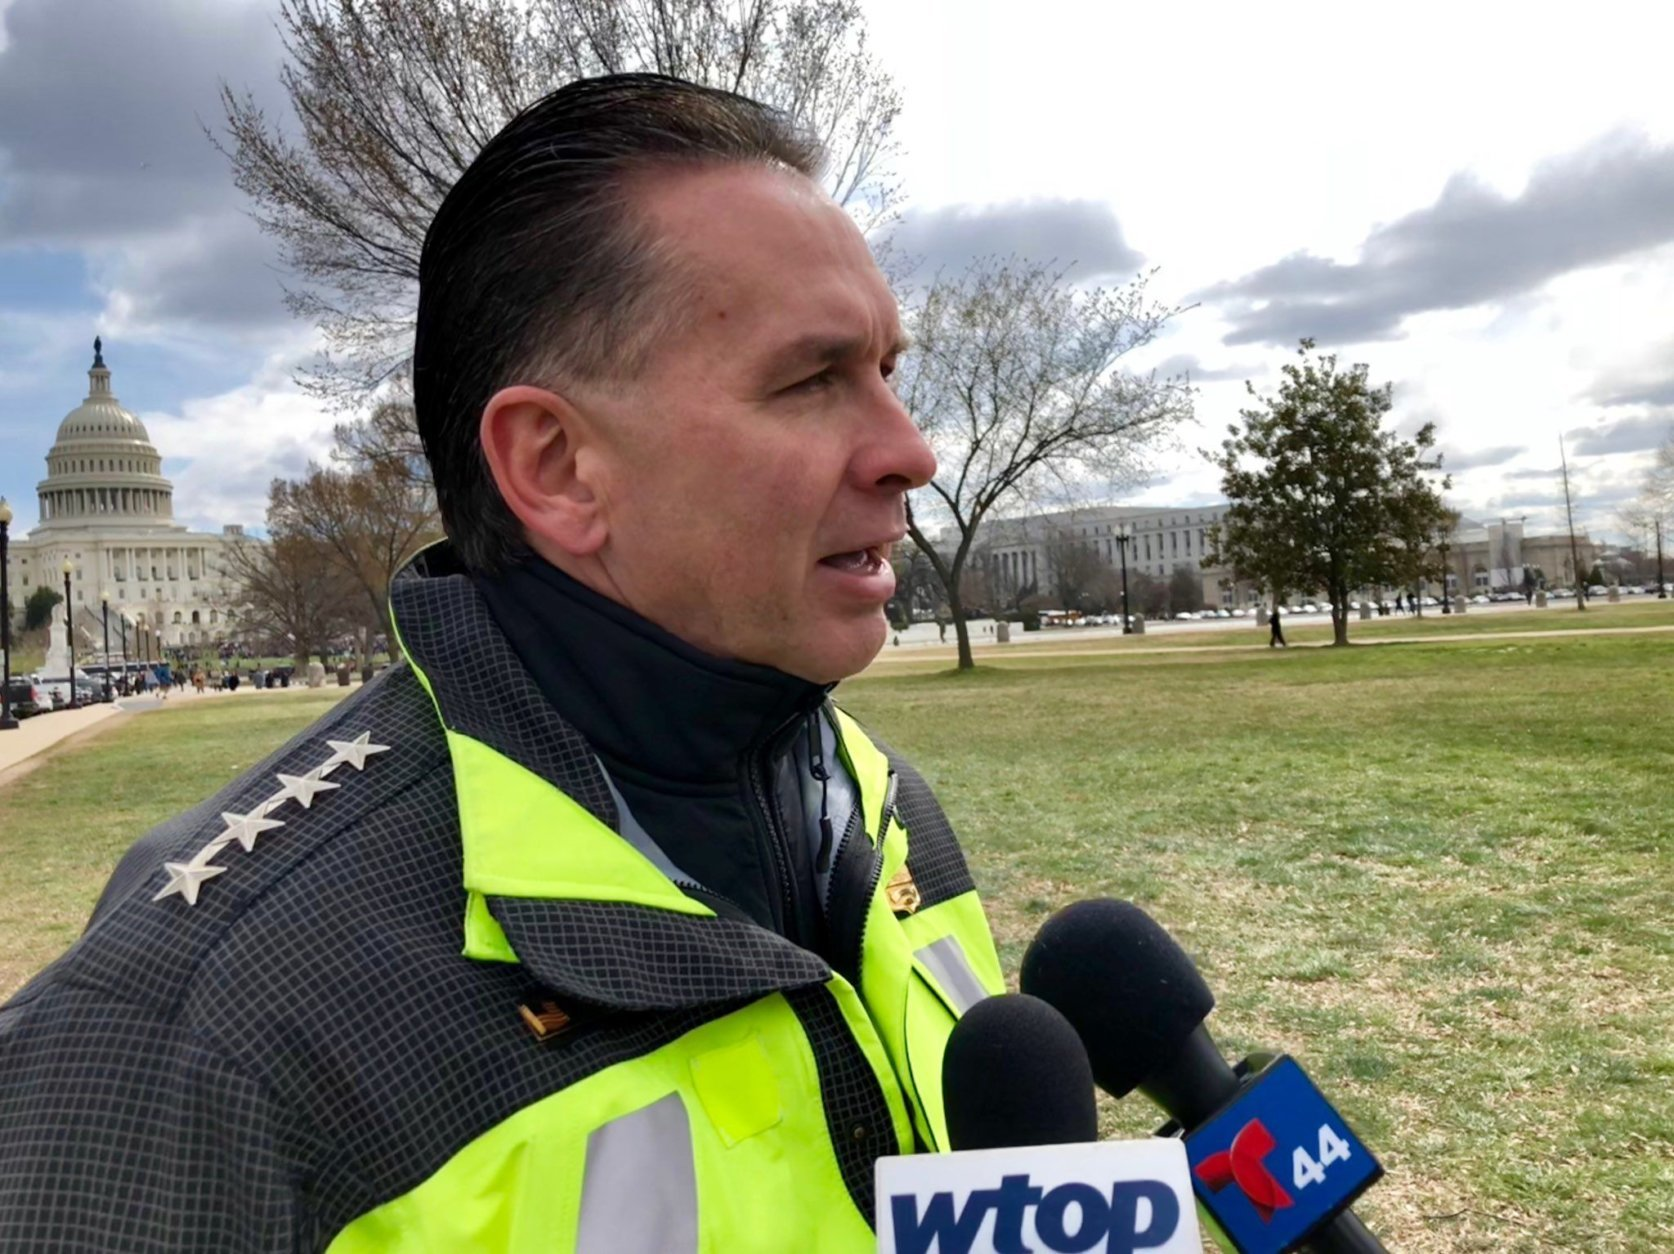 D.C. police Chief Peter Newsham announced an arrest in the Marty McMillan case on Tuesday. (WTOP/Megan Cloherty, file)